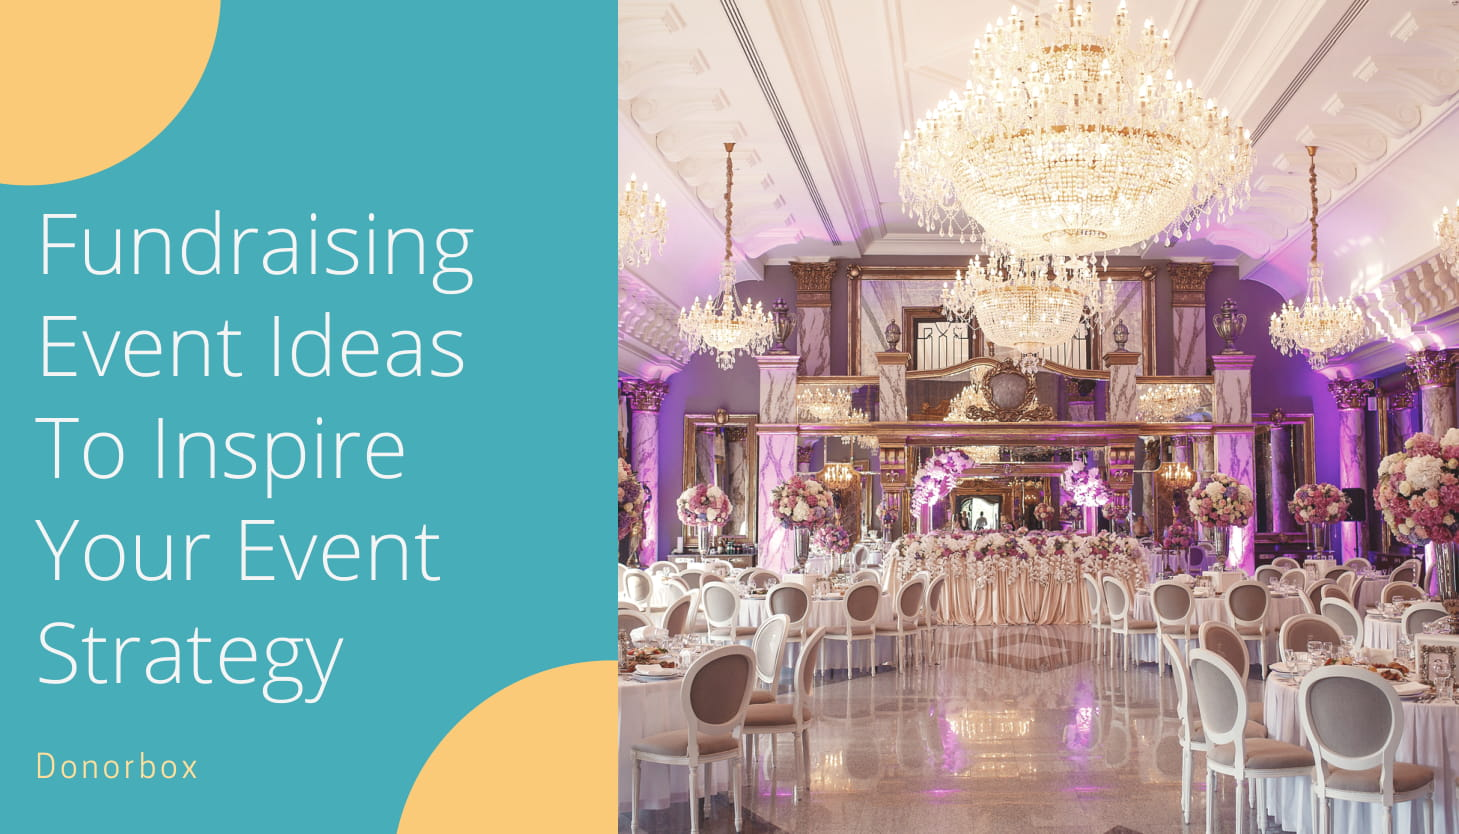 16 effective nonprofit fundraising event ideas to inspire your event strategy